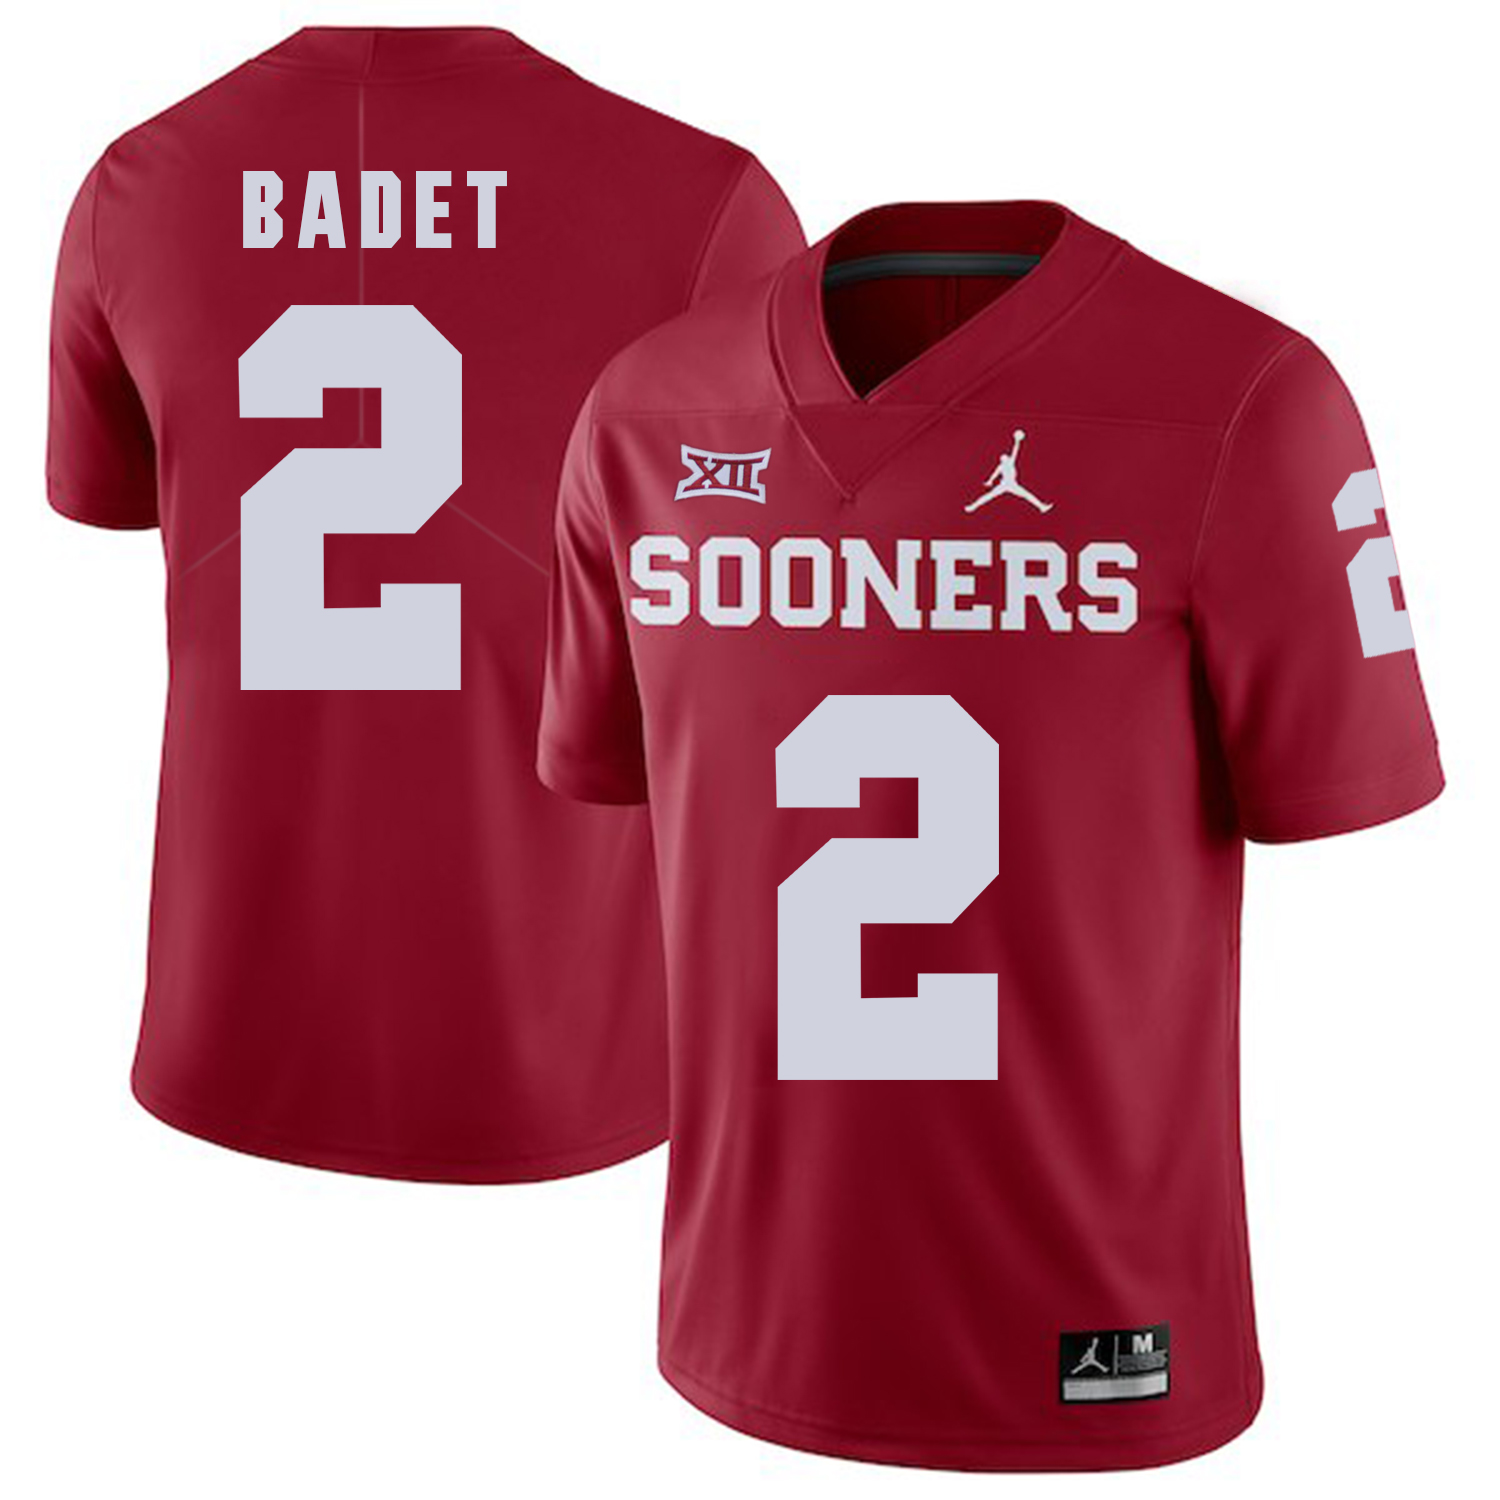 Oklahoma Sooners 2 Jeff Badet Red College Football Jersey